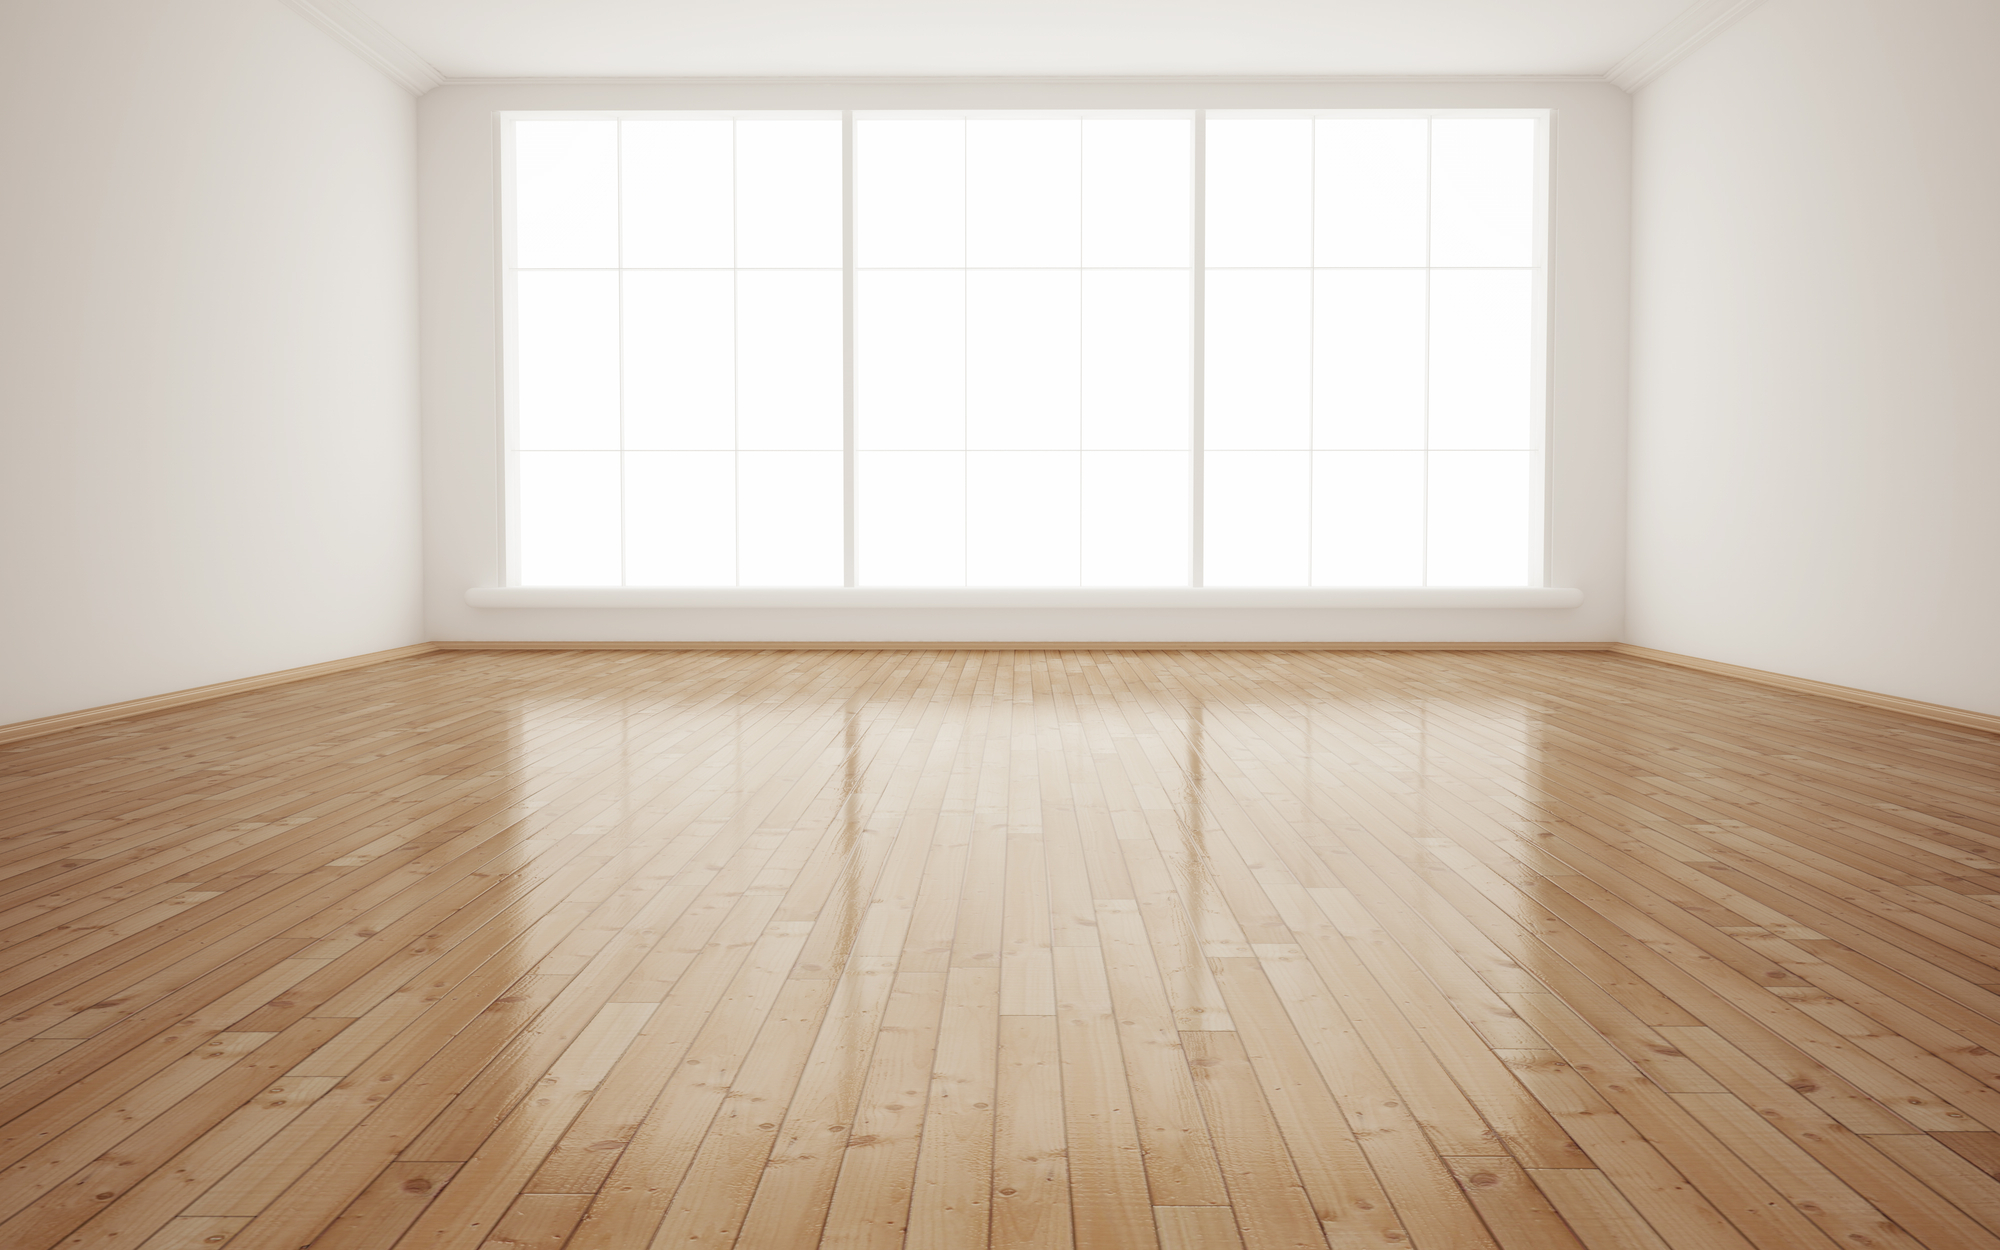 Bright Interior Empty Room 3D render